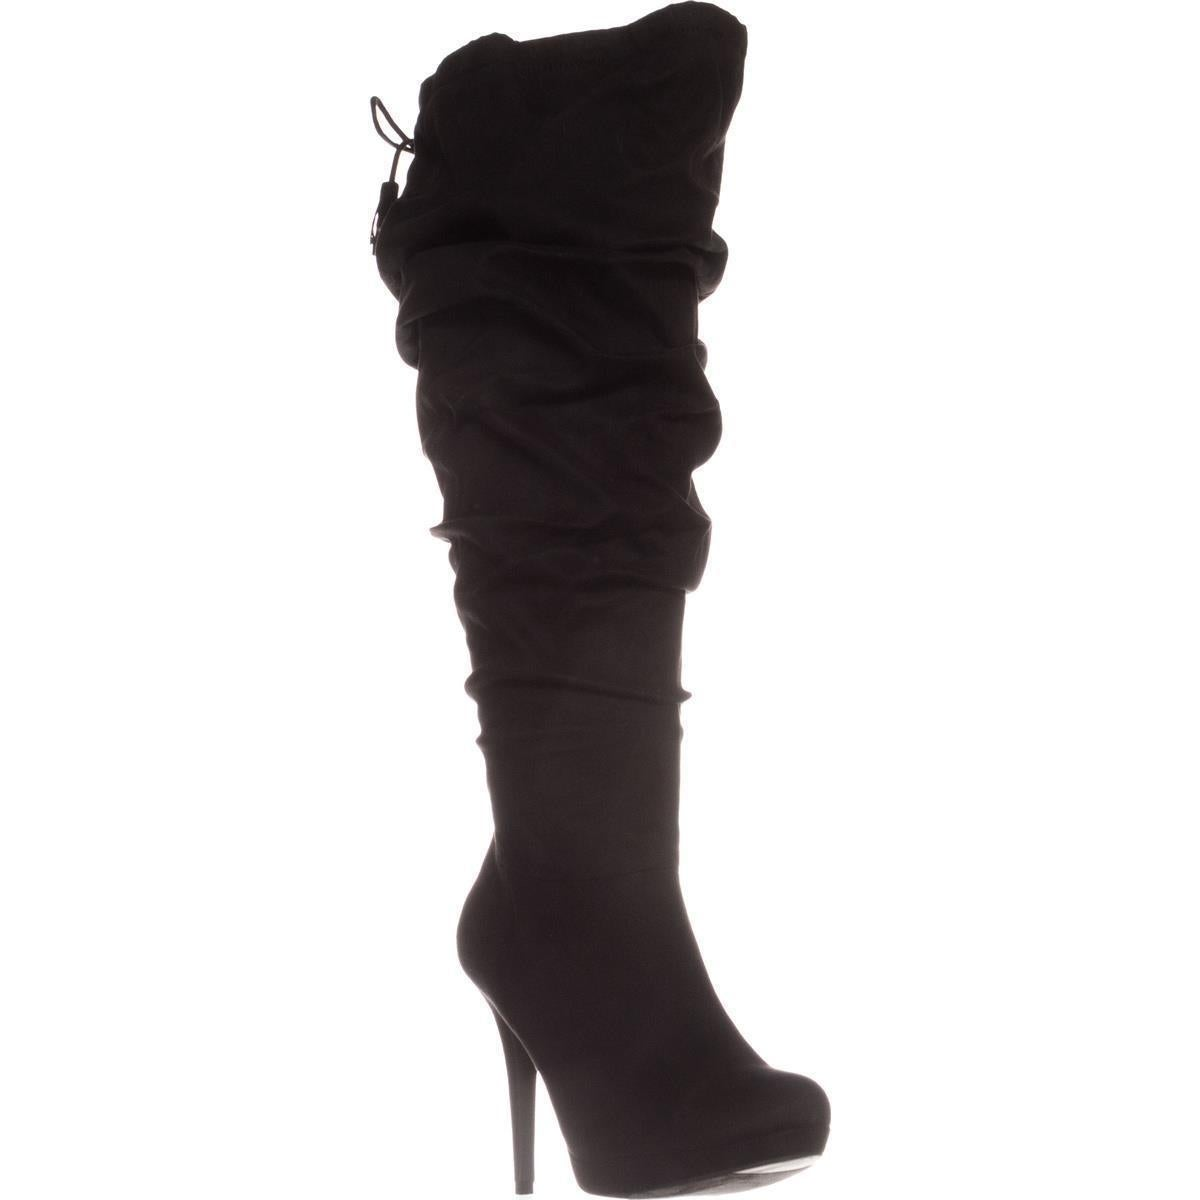 0e5be1884459 Buy Knee-High Boots Women's Boots Online at Overstock | Our Best Women's  Shoes Deals